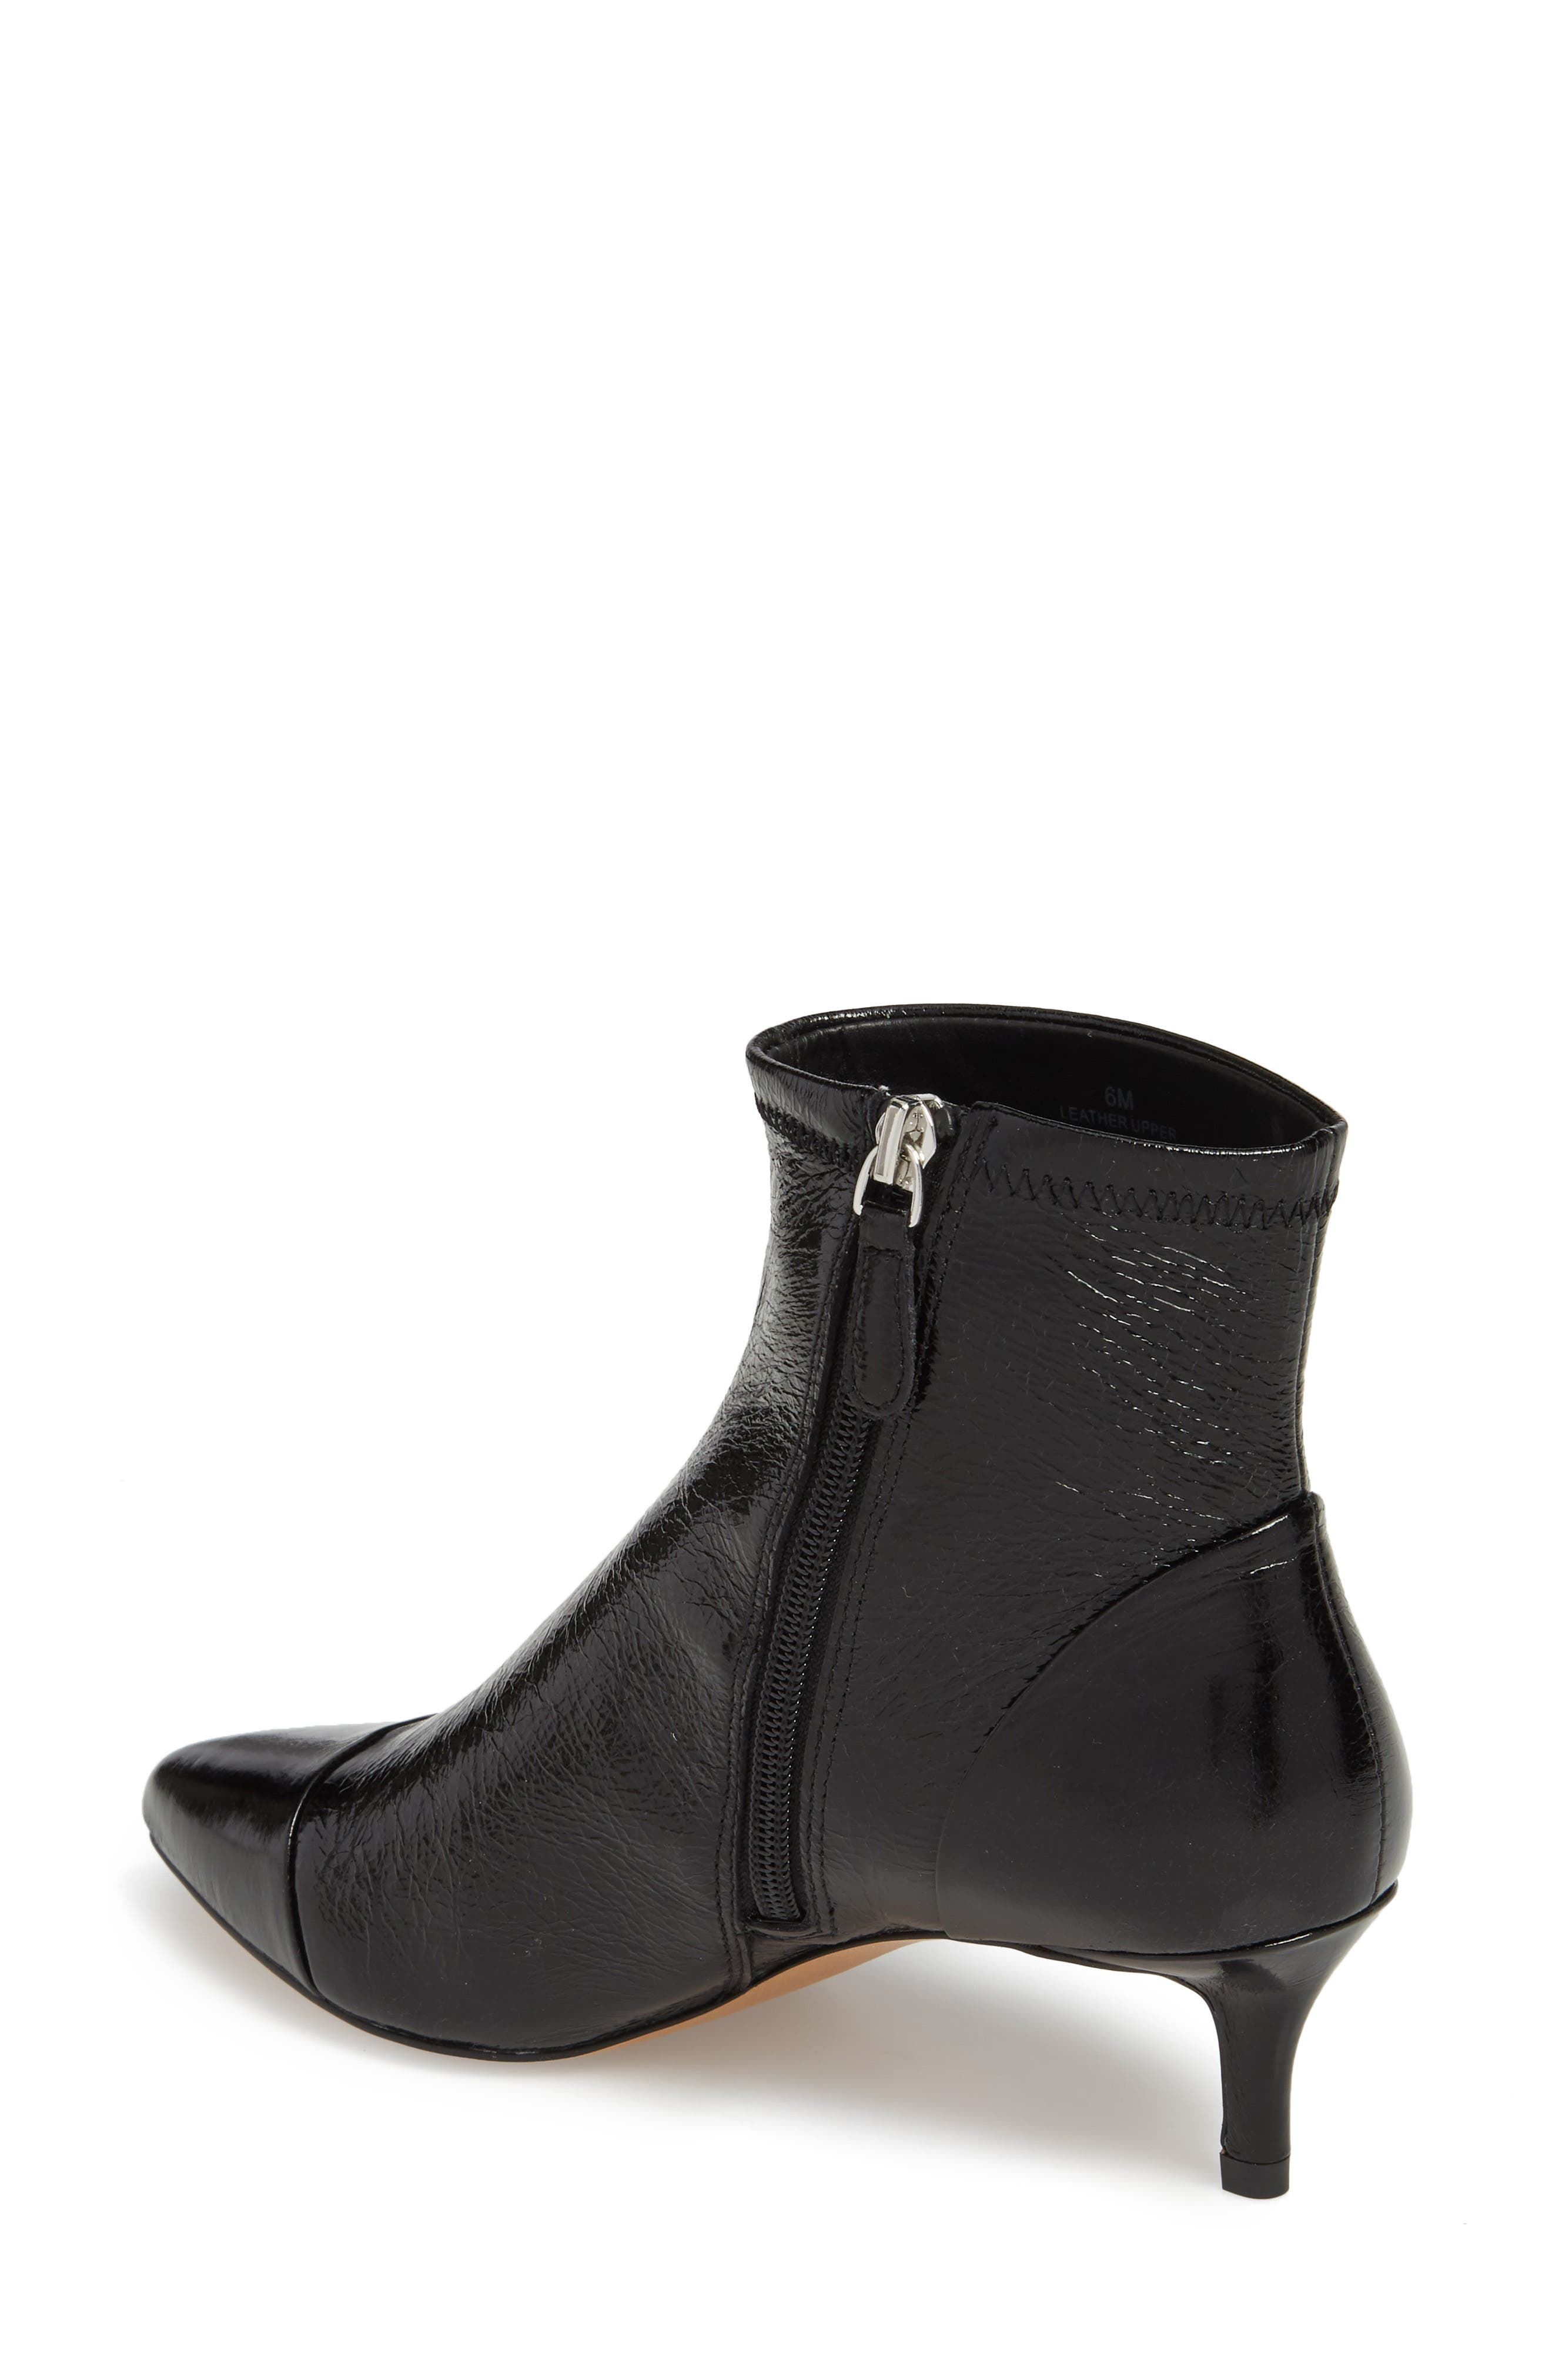 Siya Bootie,                             Alternate thumbnail 2, color,                             BLACK LEATHER